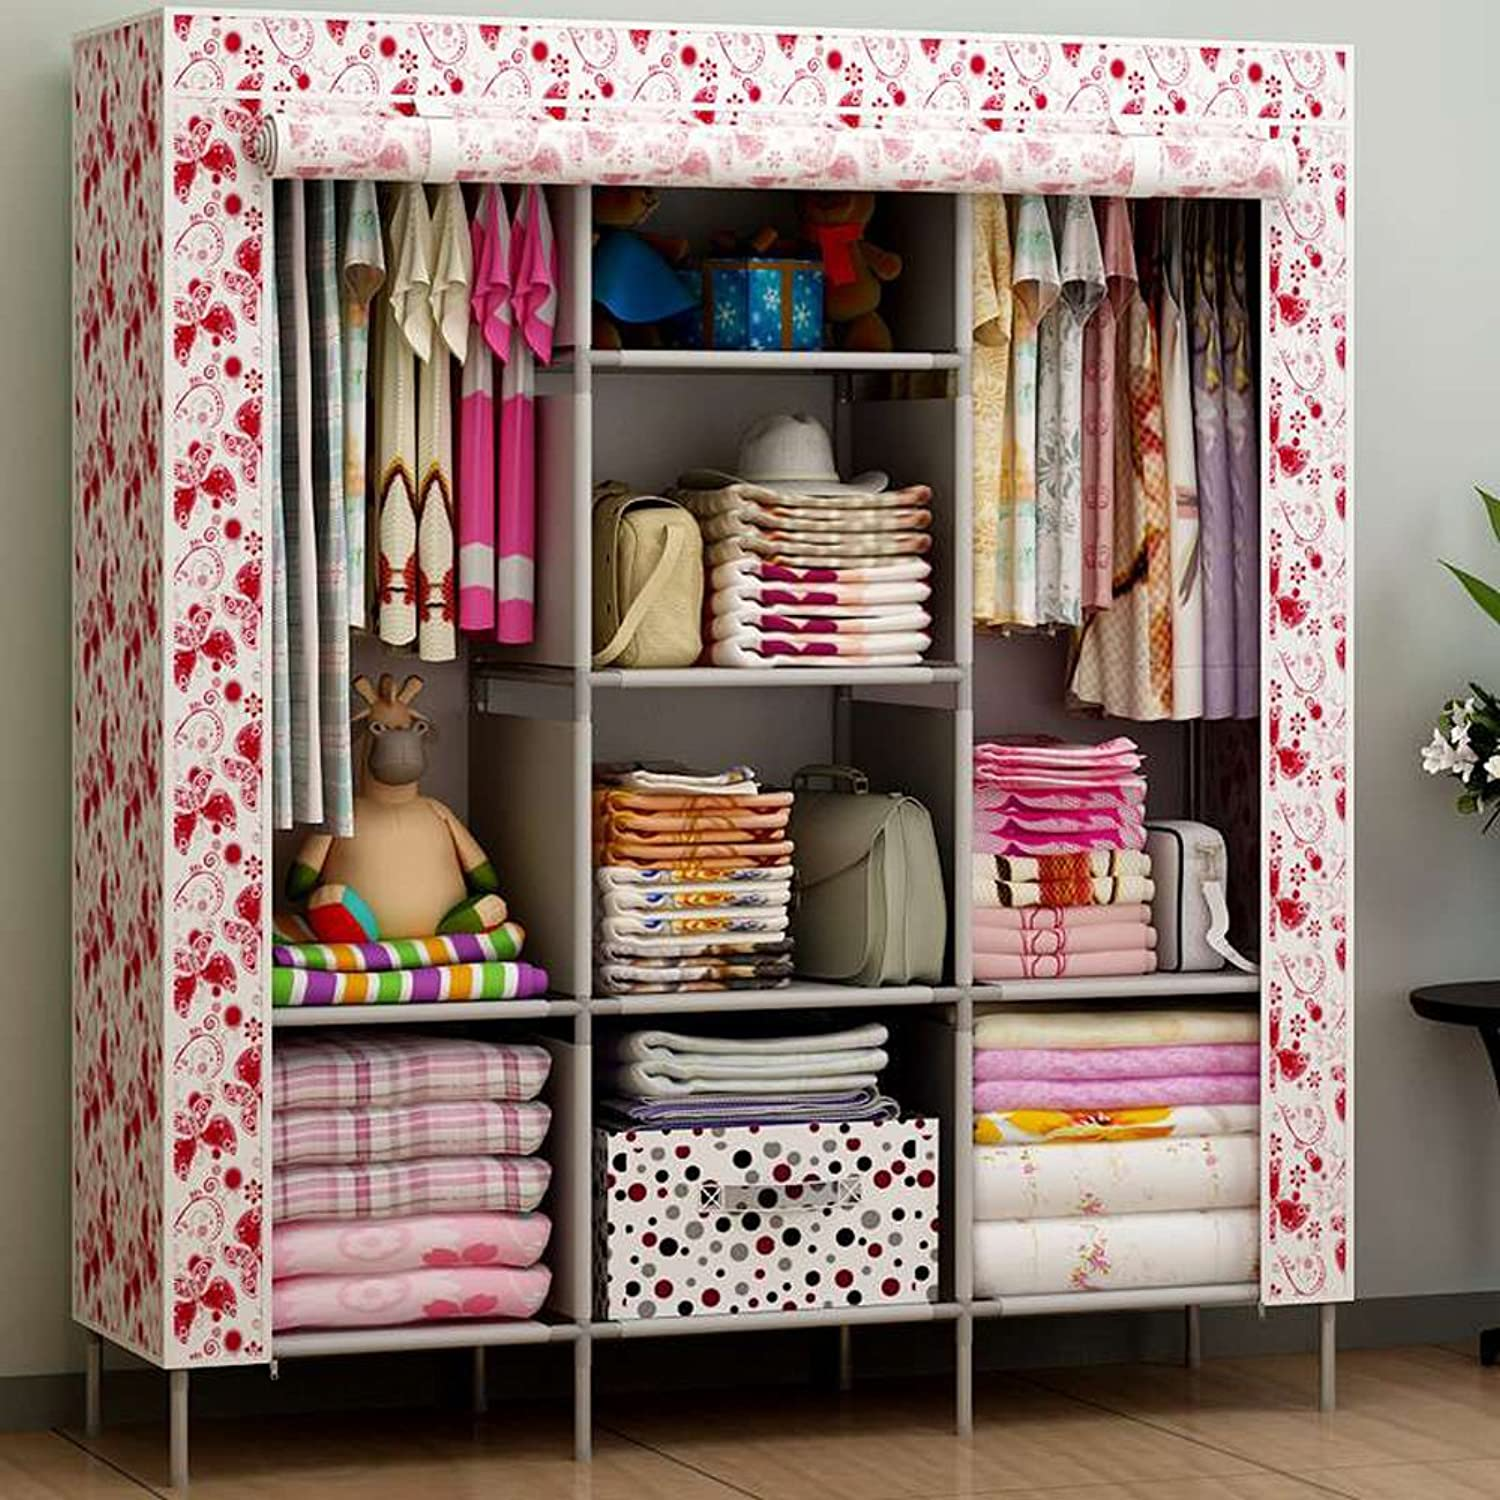 Generic Portable Closet Folding Clothes Wardrobe Bedroom Furniture Armoire Cabinet Hot (Butterflies)